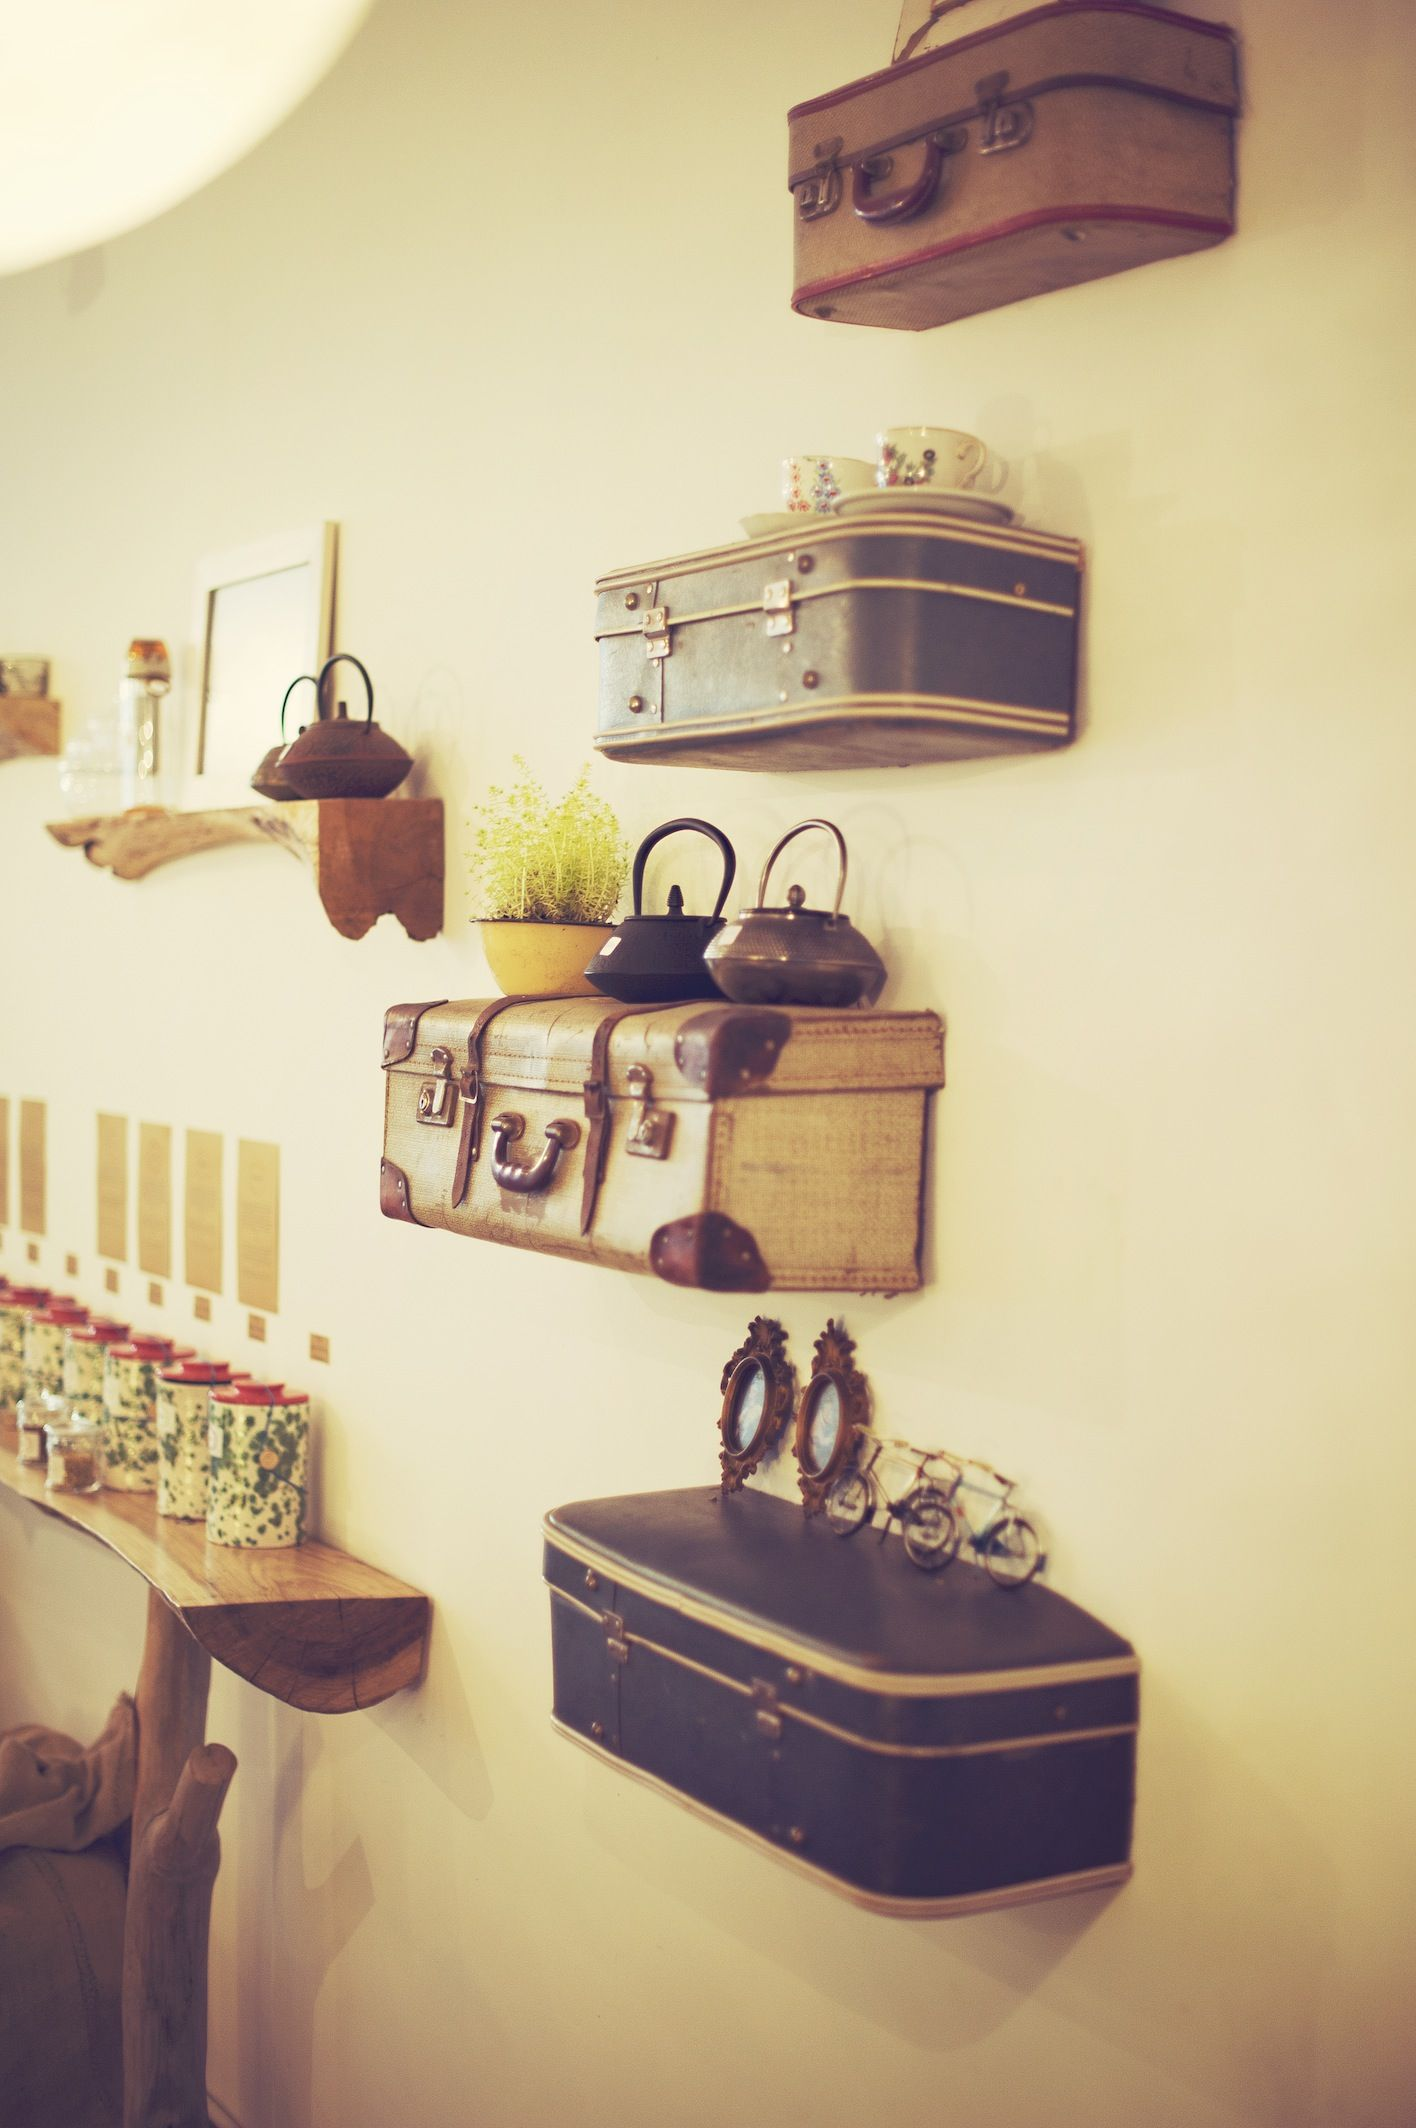 Case Shelves - Perfect For Display Jewellery, No